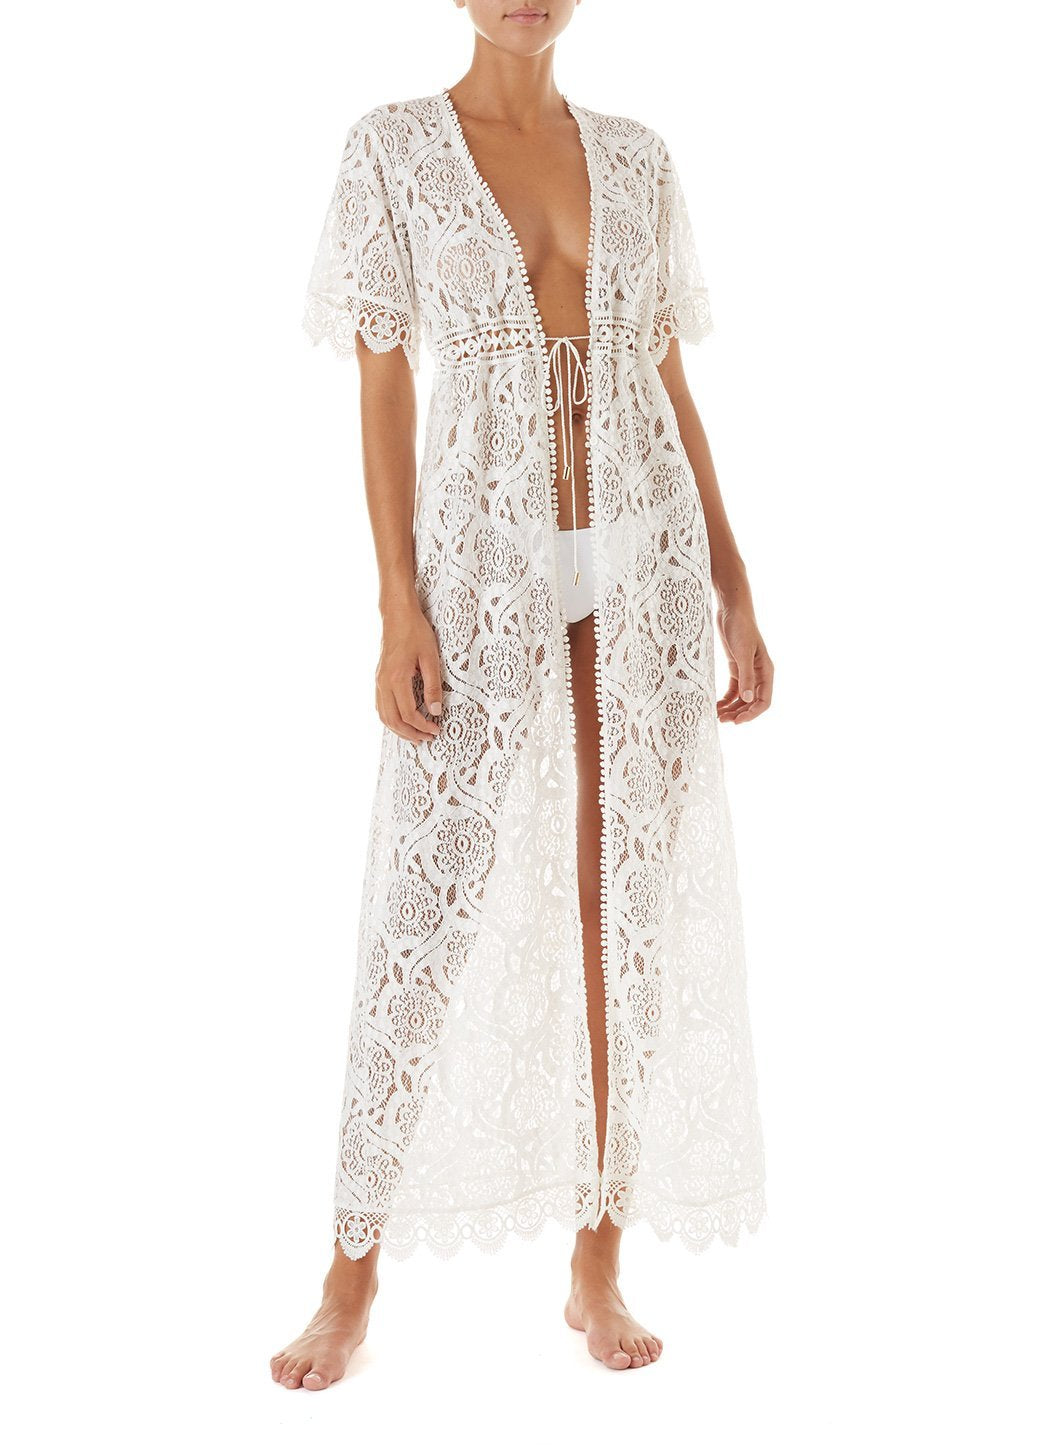 gabrielle cream embroidered lace maxi button down coverup 2019 F